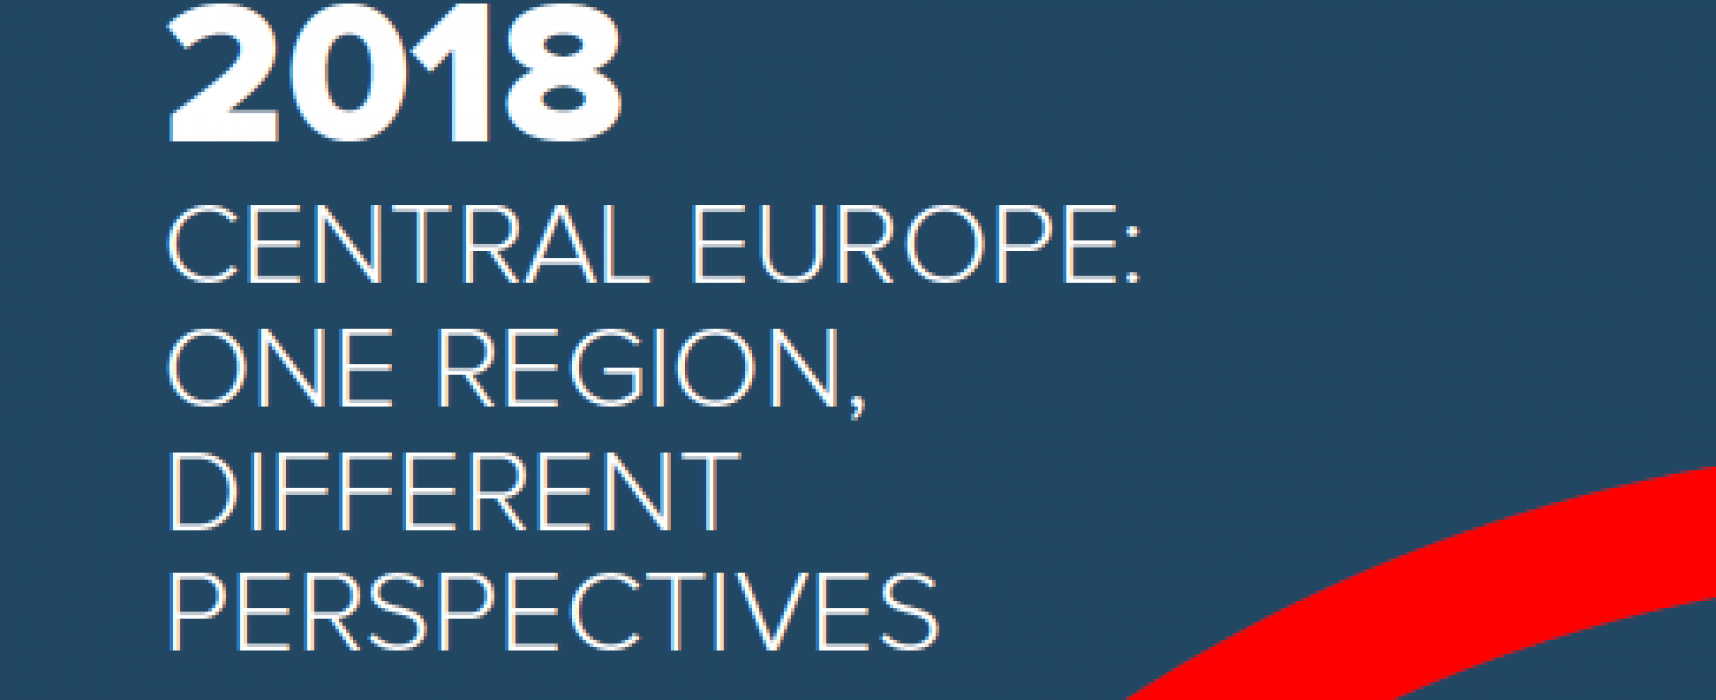 GLOBSEC Trends 2018 Central Europe: One region, different perspectives